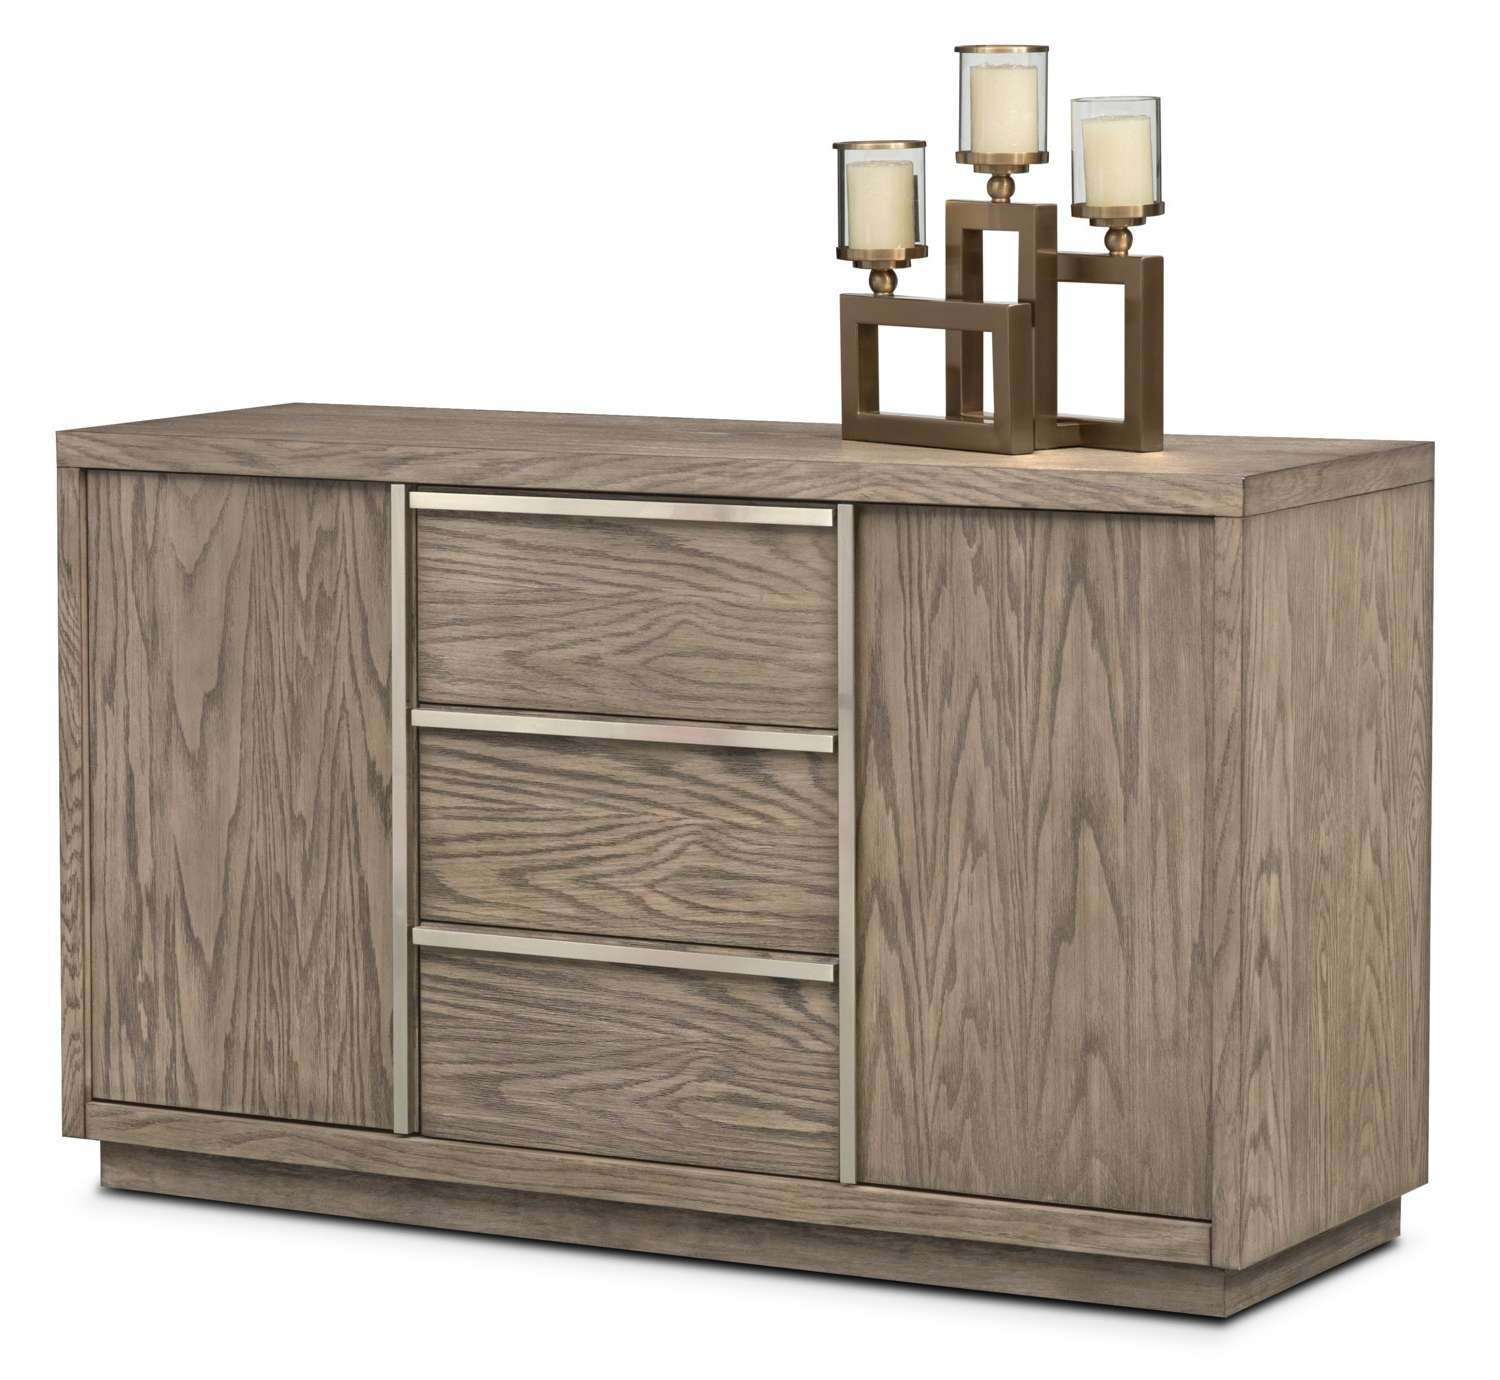 Buffet & Sideboard Cabinets | Value City Furniture And Mattresses Within Small Mirrored Sideboards (View 1 of 20)